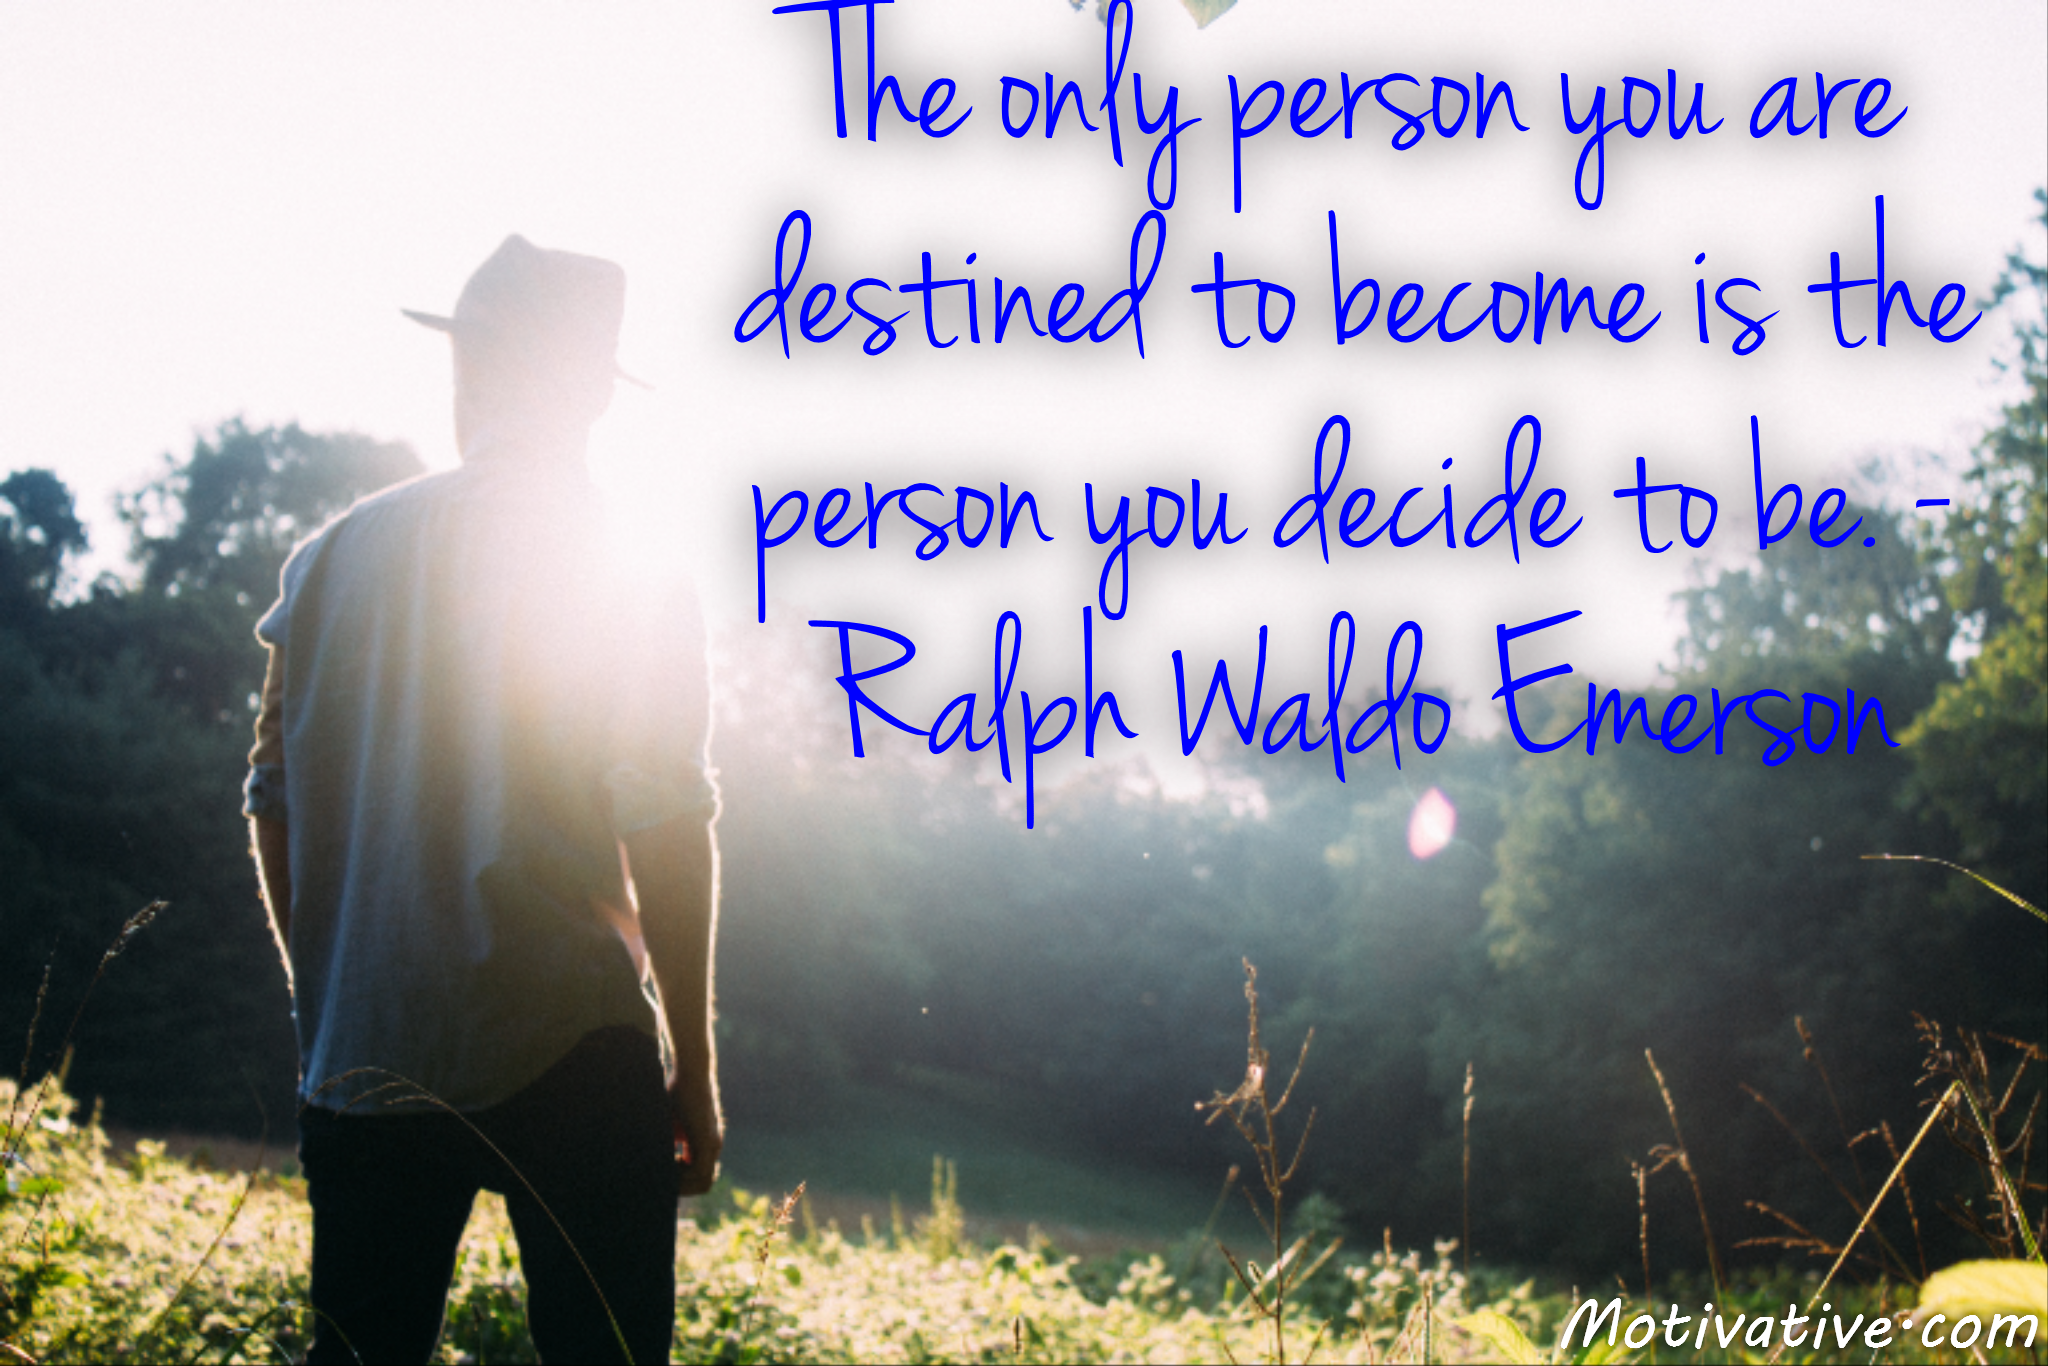 The only person you are destined to become is the person you decide to be. – Ralph Waldo Emerson